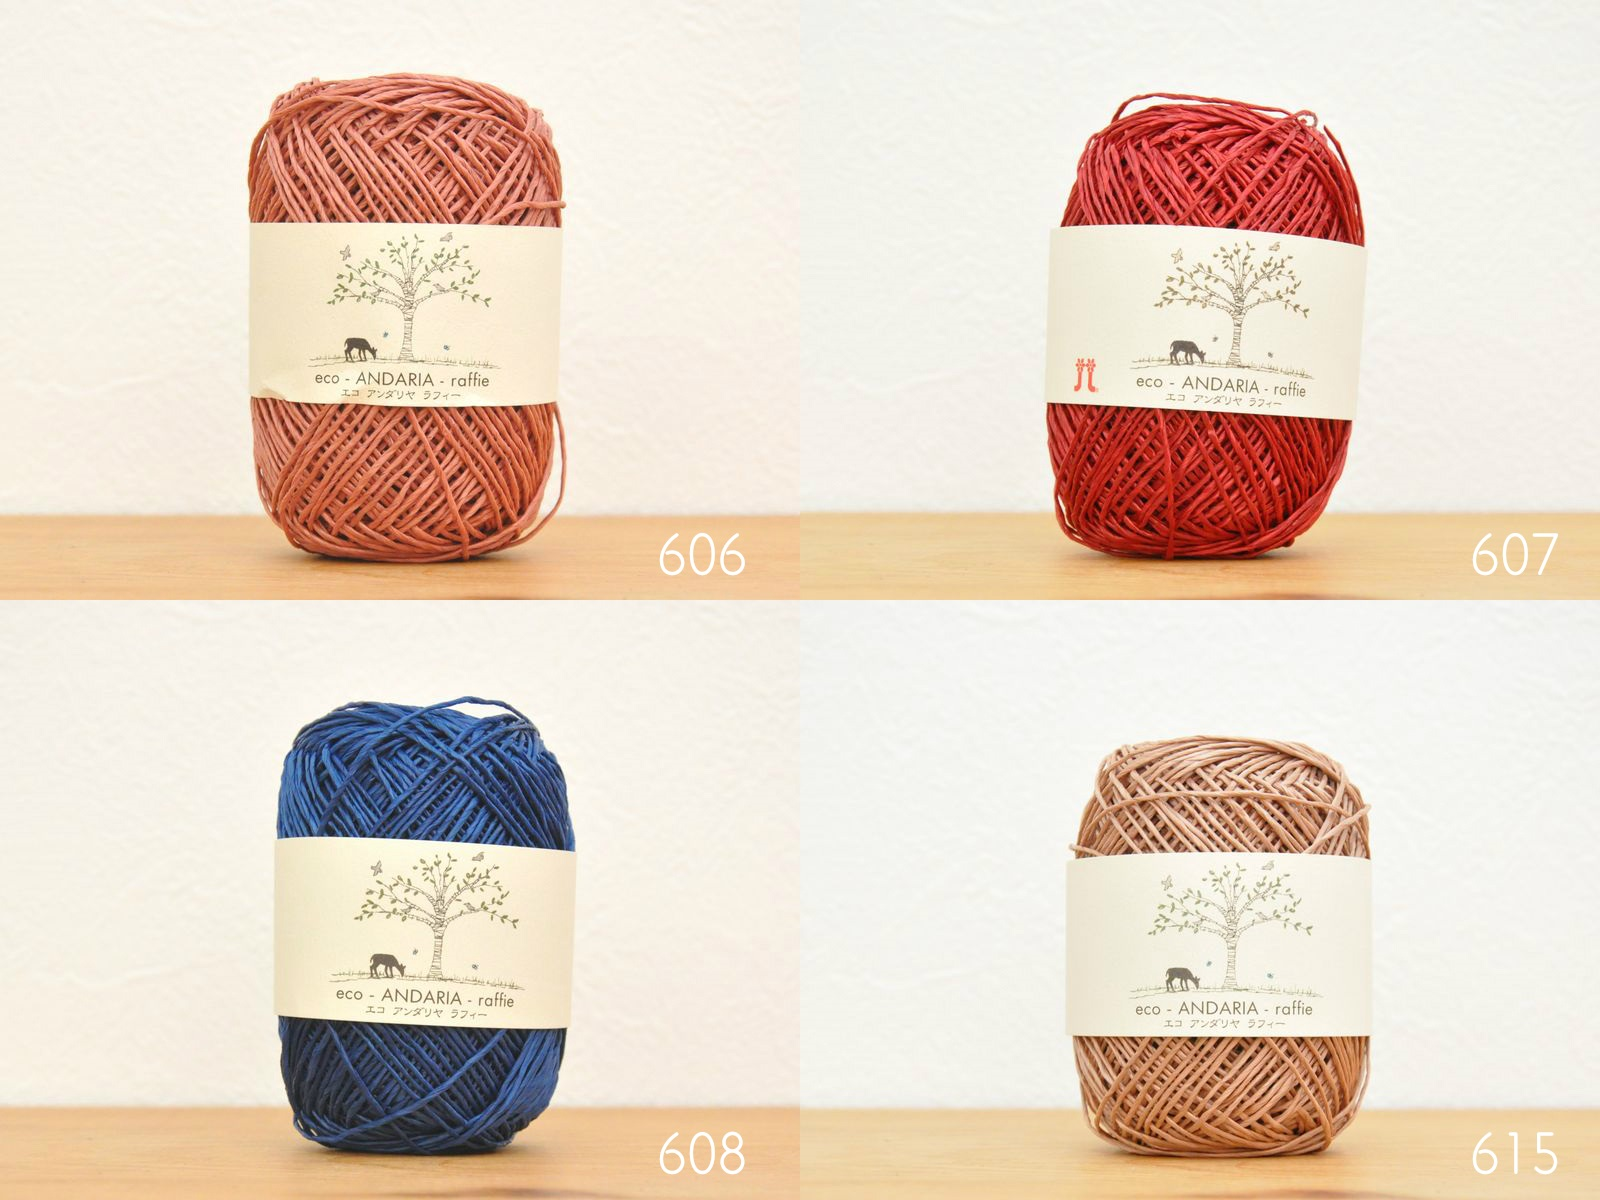 Is a popular goods eco Antalya, Rafi eco raffie ANDARIA made in Japan the summer ♪ silky texture is perfect for the summer! Gadgets and Interior and fashion accessories / hats / summer yarn / spring summer / Sumerian /Yarn / crochet / 05P11Apr457.